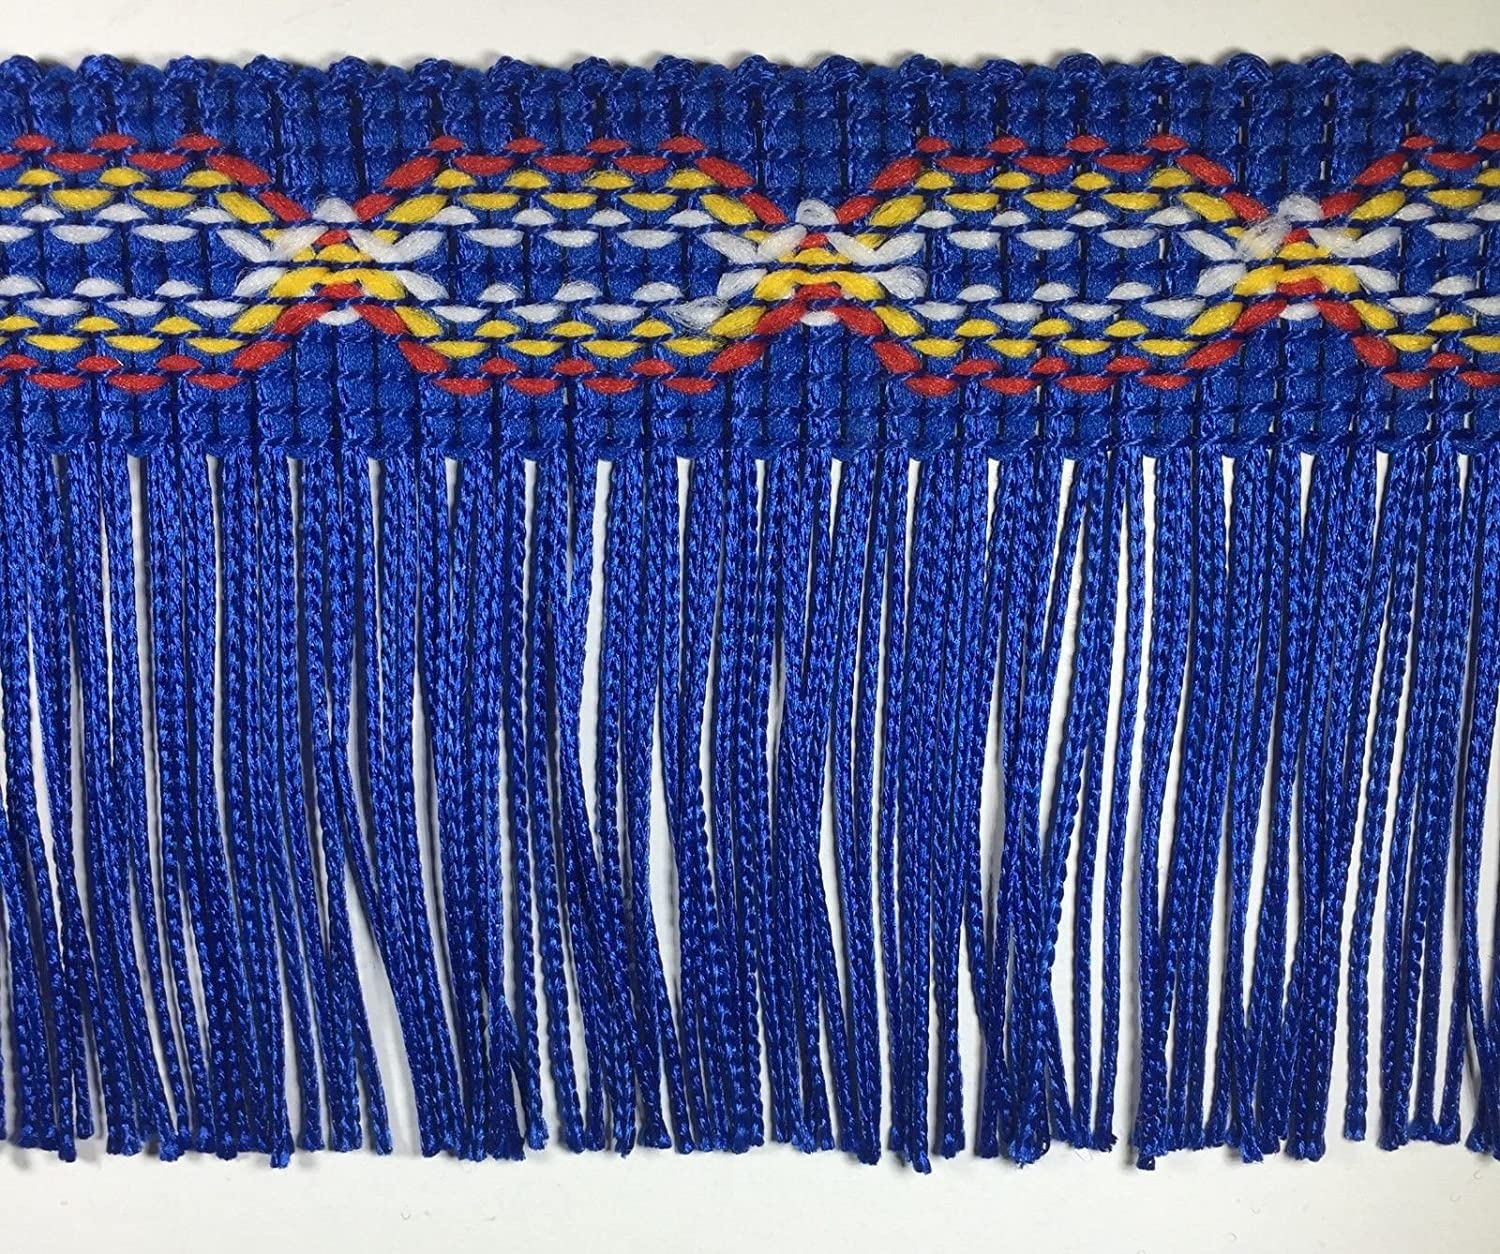 10 CONTINUOUS YARDS BBTRIMSANDRIBBON 3 CHAINETTE FRINGE TRIM MANY STYLES /& COLORS AVAILABLE! ROYAL